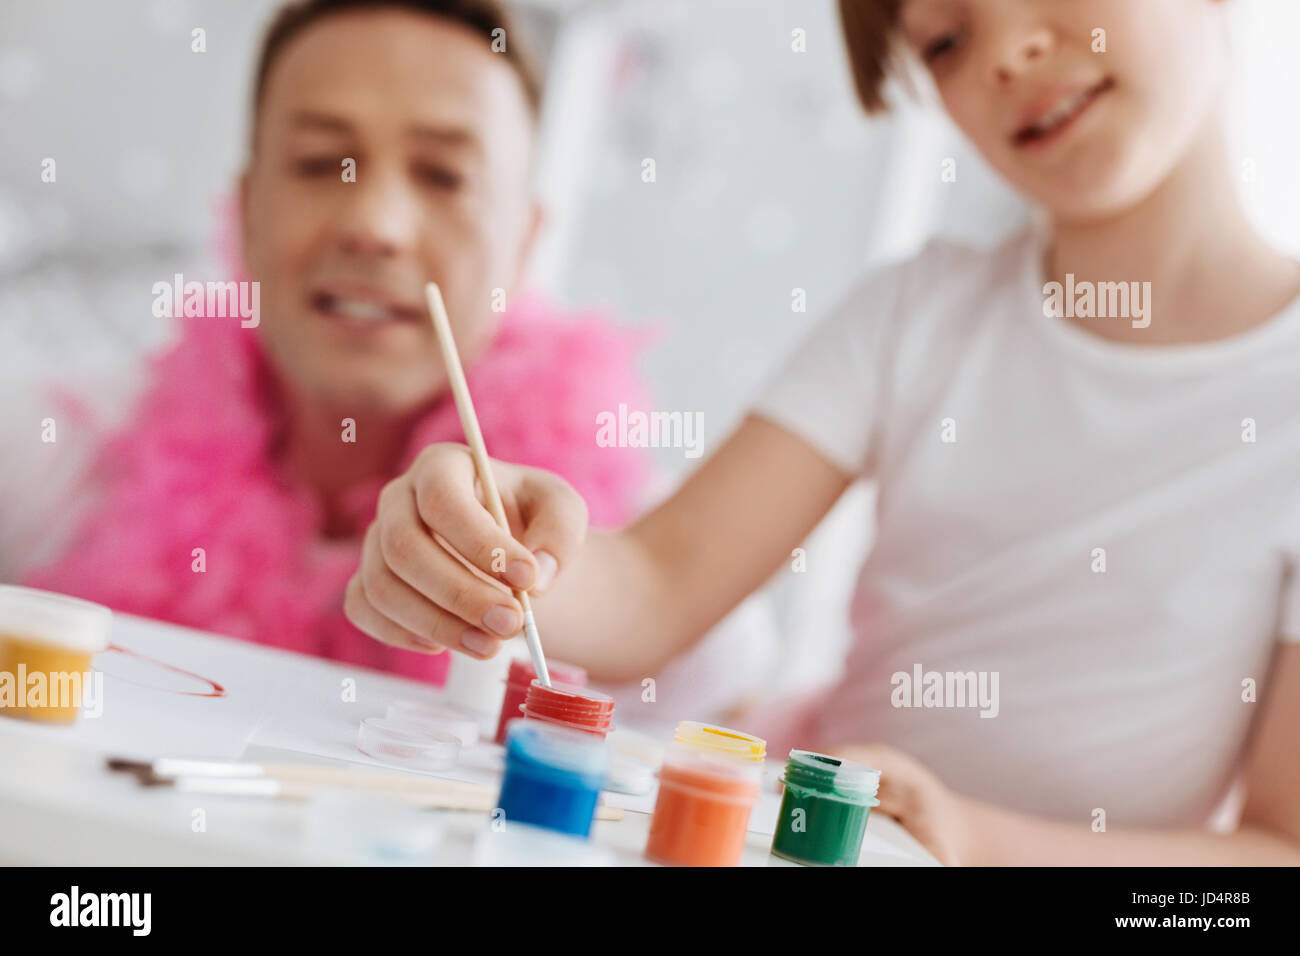 Supportive motivated parent guiding his child - Stock Image